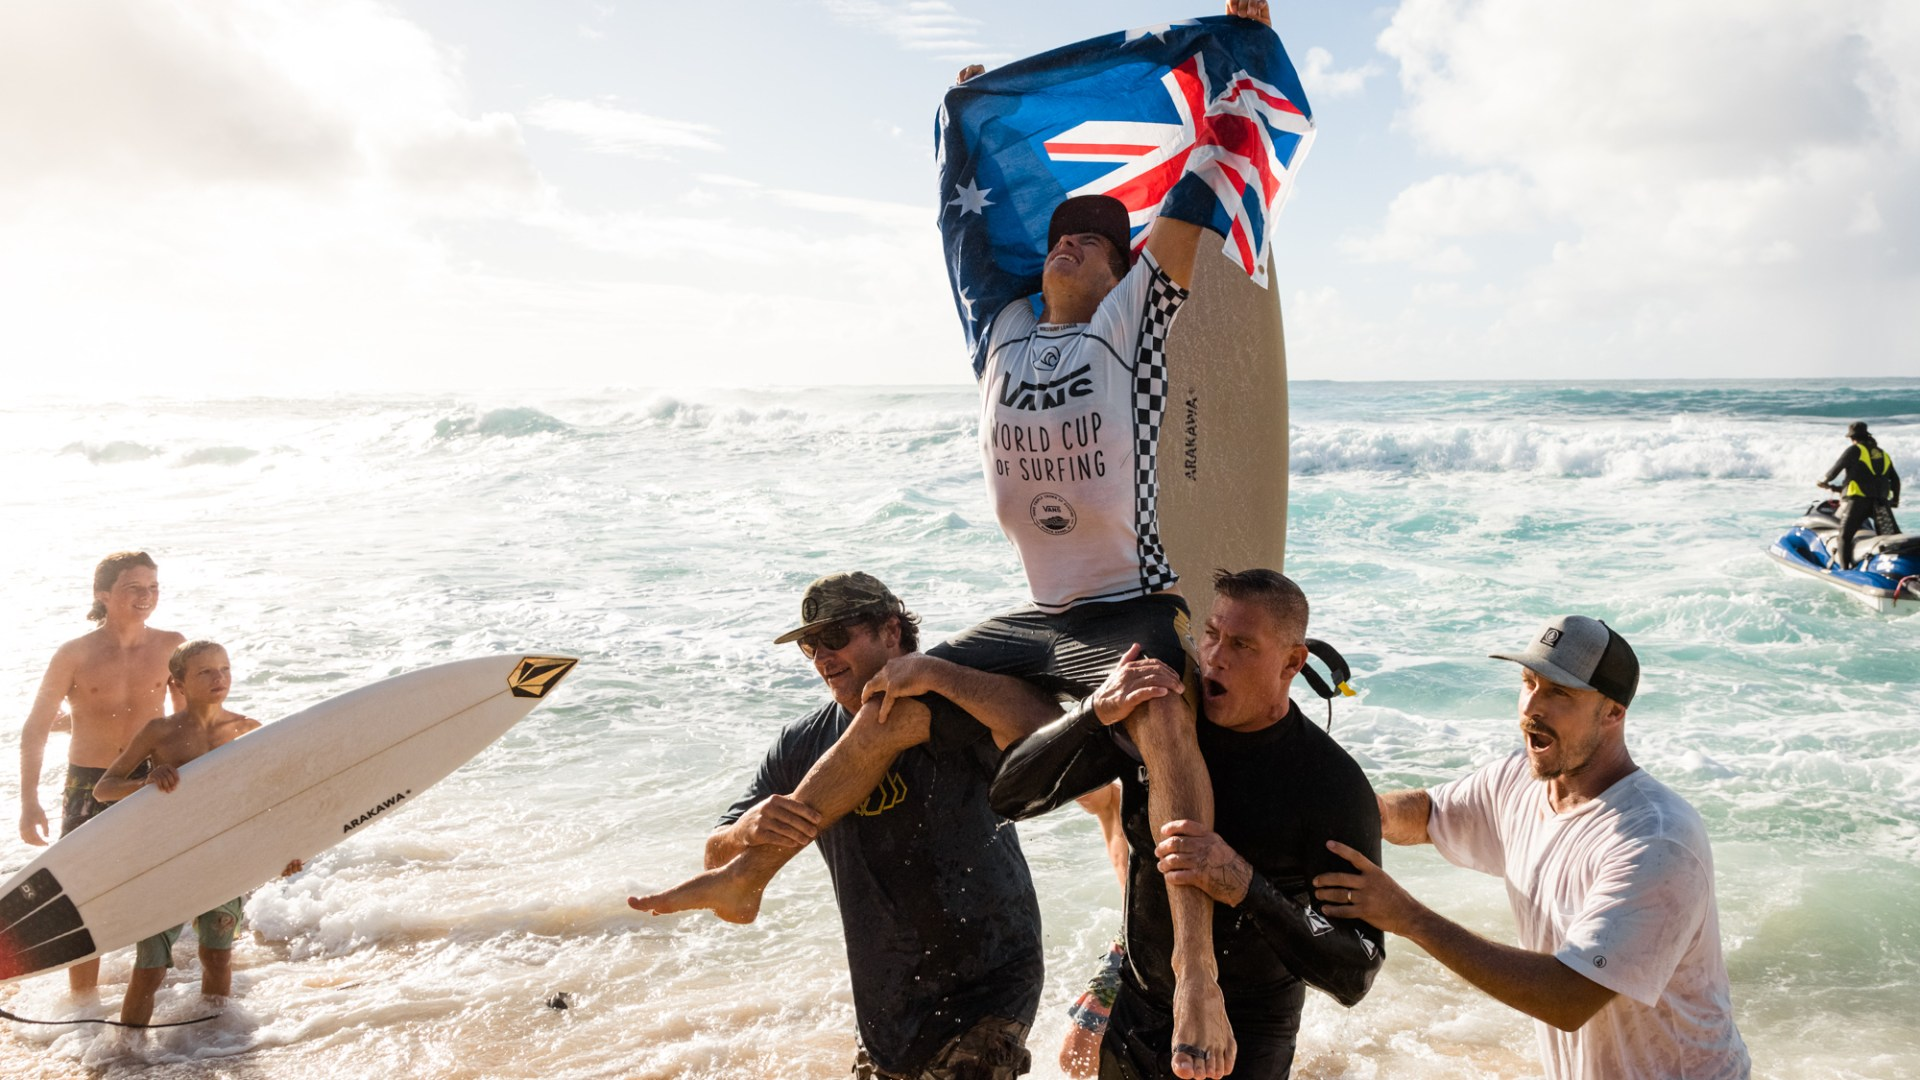 Jack Robinson Qualifies For 2020 Ct With Sunset Winsurfer